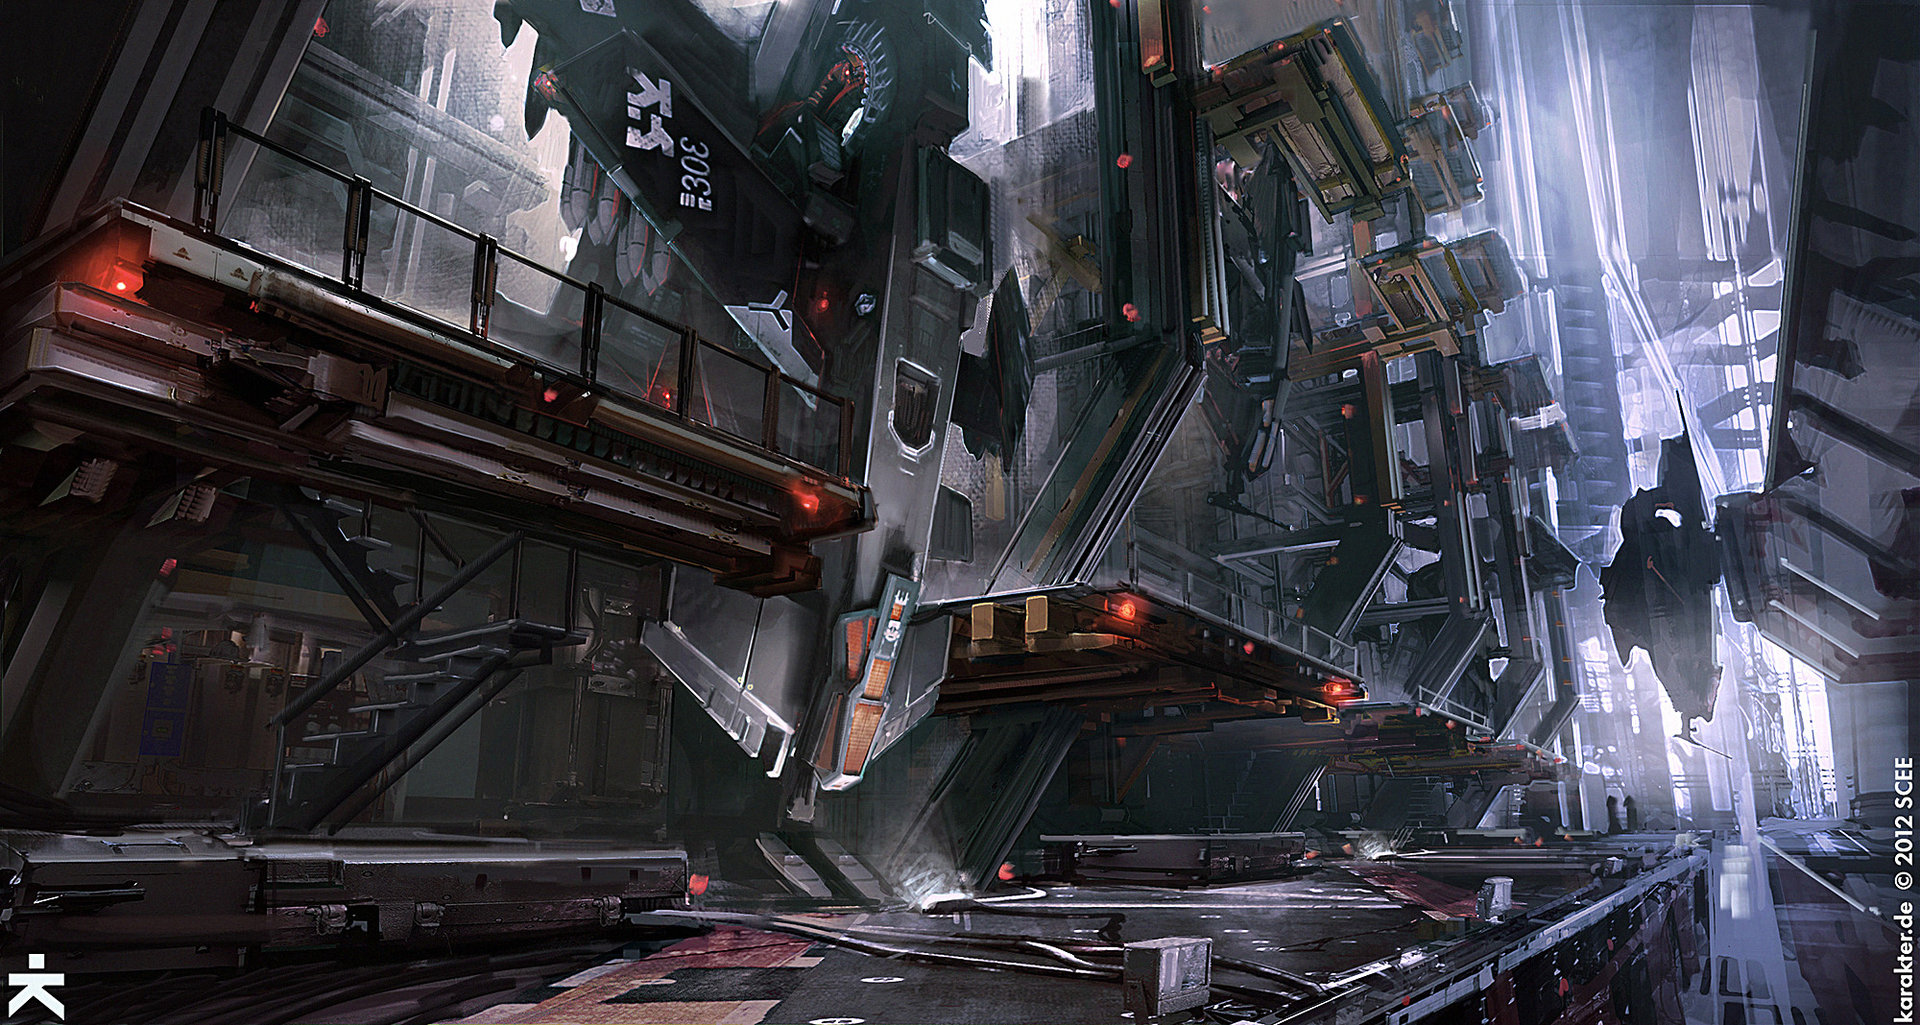 the-scifi-art-of-mike-hill-11